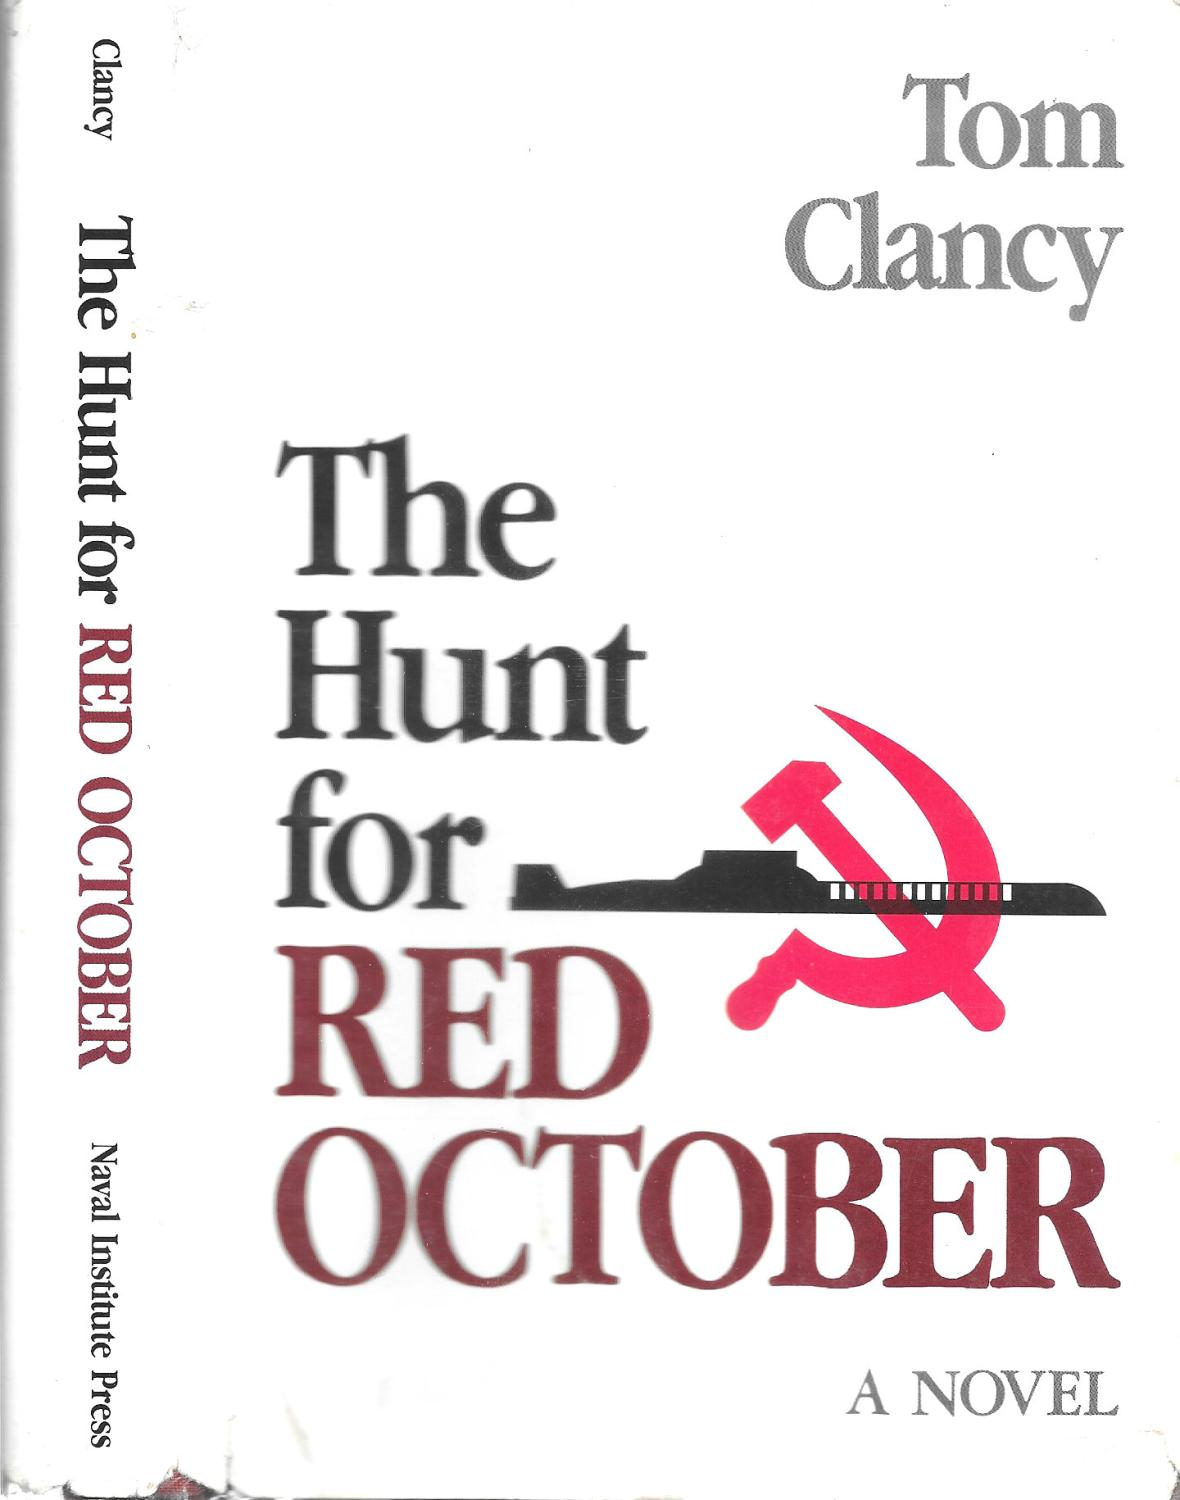 a review of the novel the hunt for red october by tom clancy User reviews tom clancy's thrilling novel converts well to the big screen clancy is a master of making improbable tales of international intrigue seem plausible unlike harrison ford who made ryan into an action hero in other tom clancy adaptations, baldwin seemed better cast as the cia.